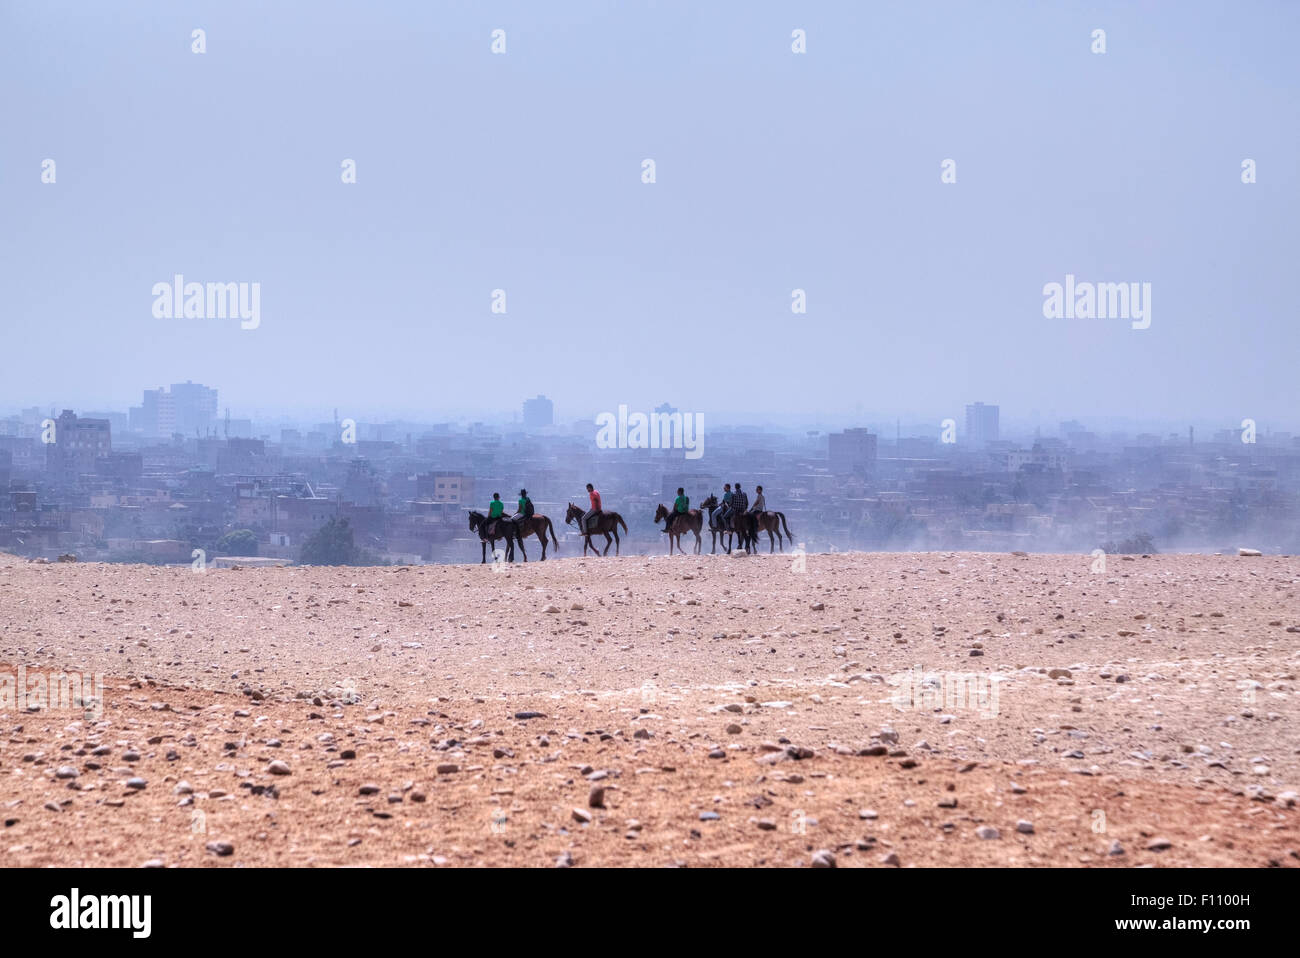 horse riding in the desert of Cairo, Egypt, Africa - Stock Image